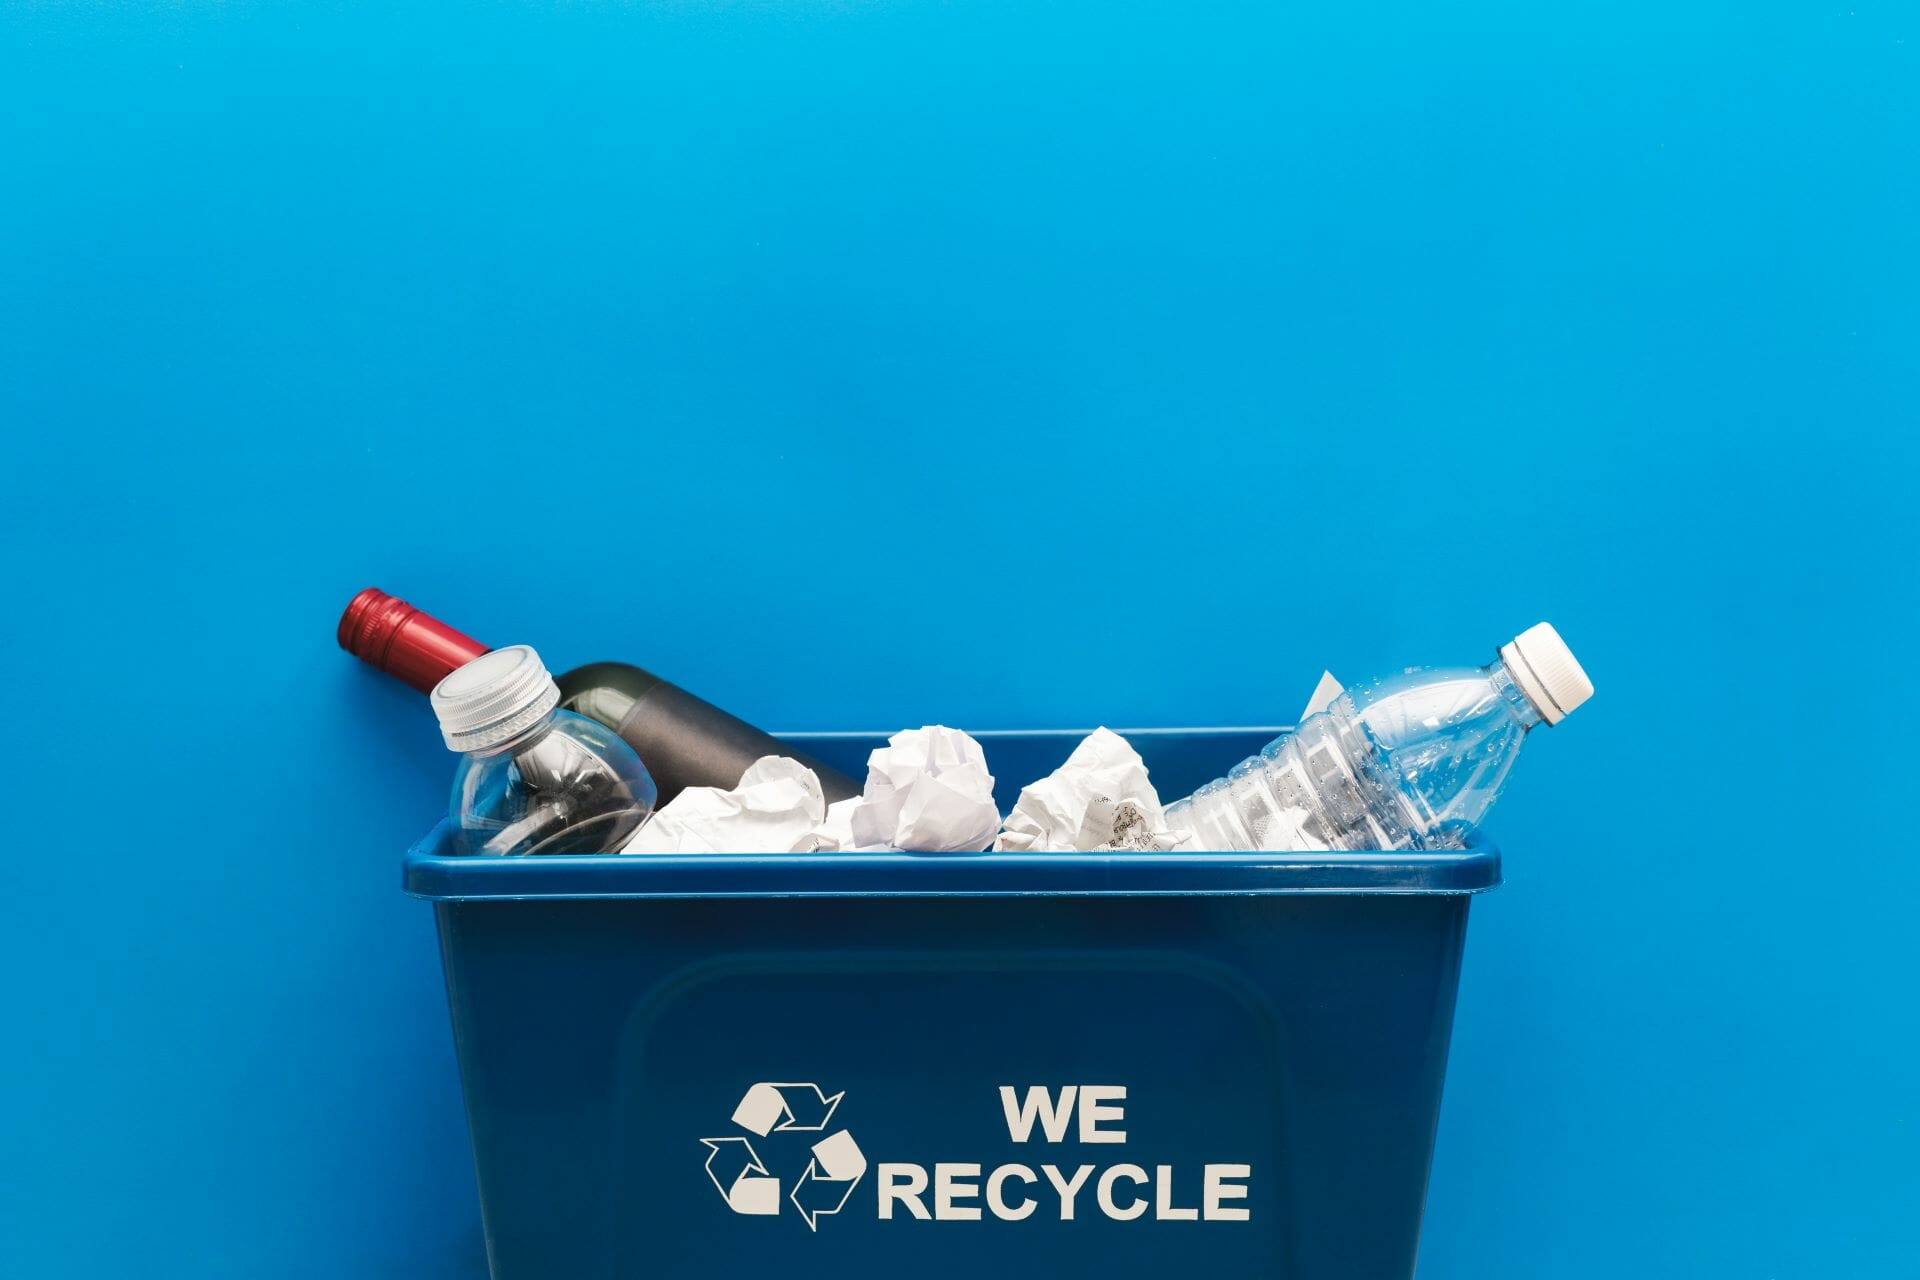 BBVA credit cards recycled materials 2023